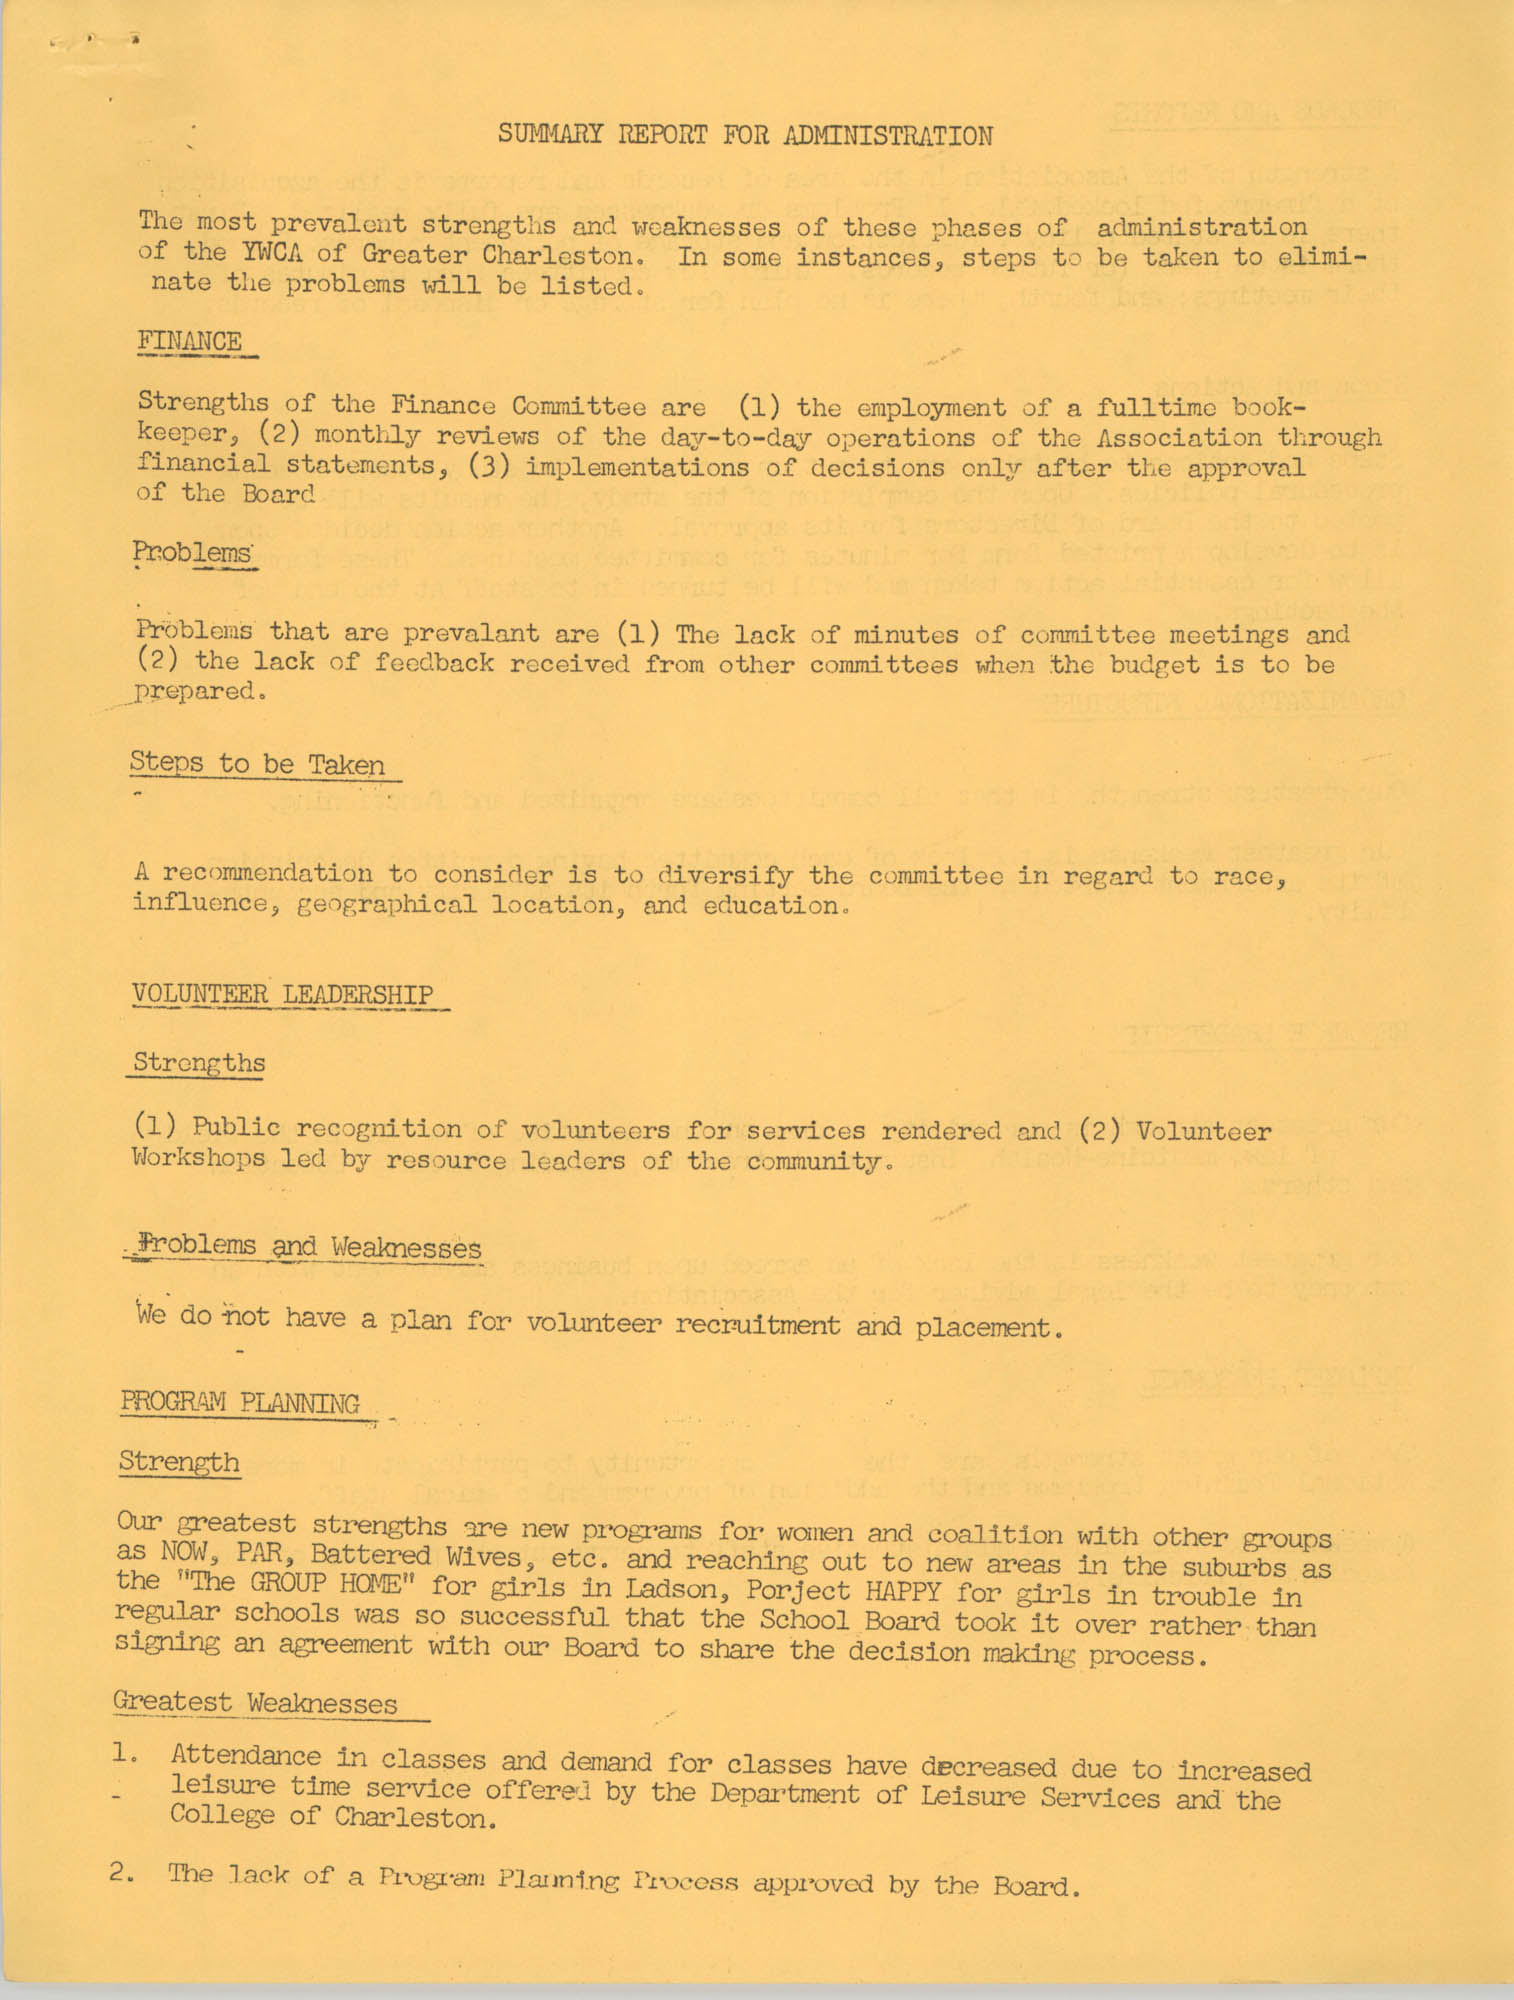 Y.W.C.A. of Greater Charleston Summary Report for Administration, Page 1